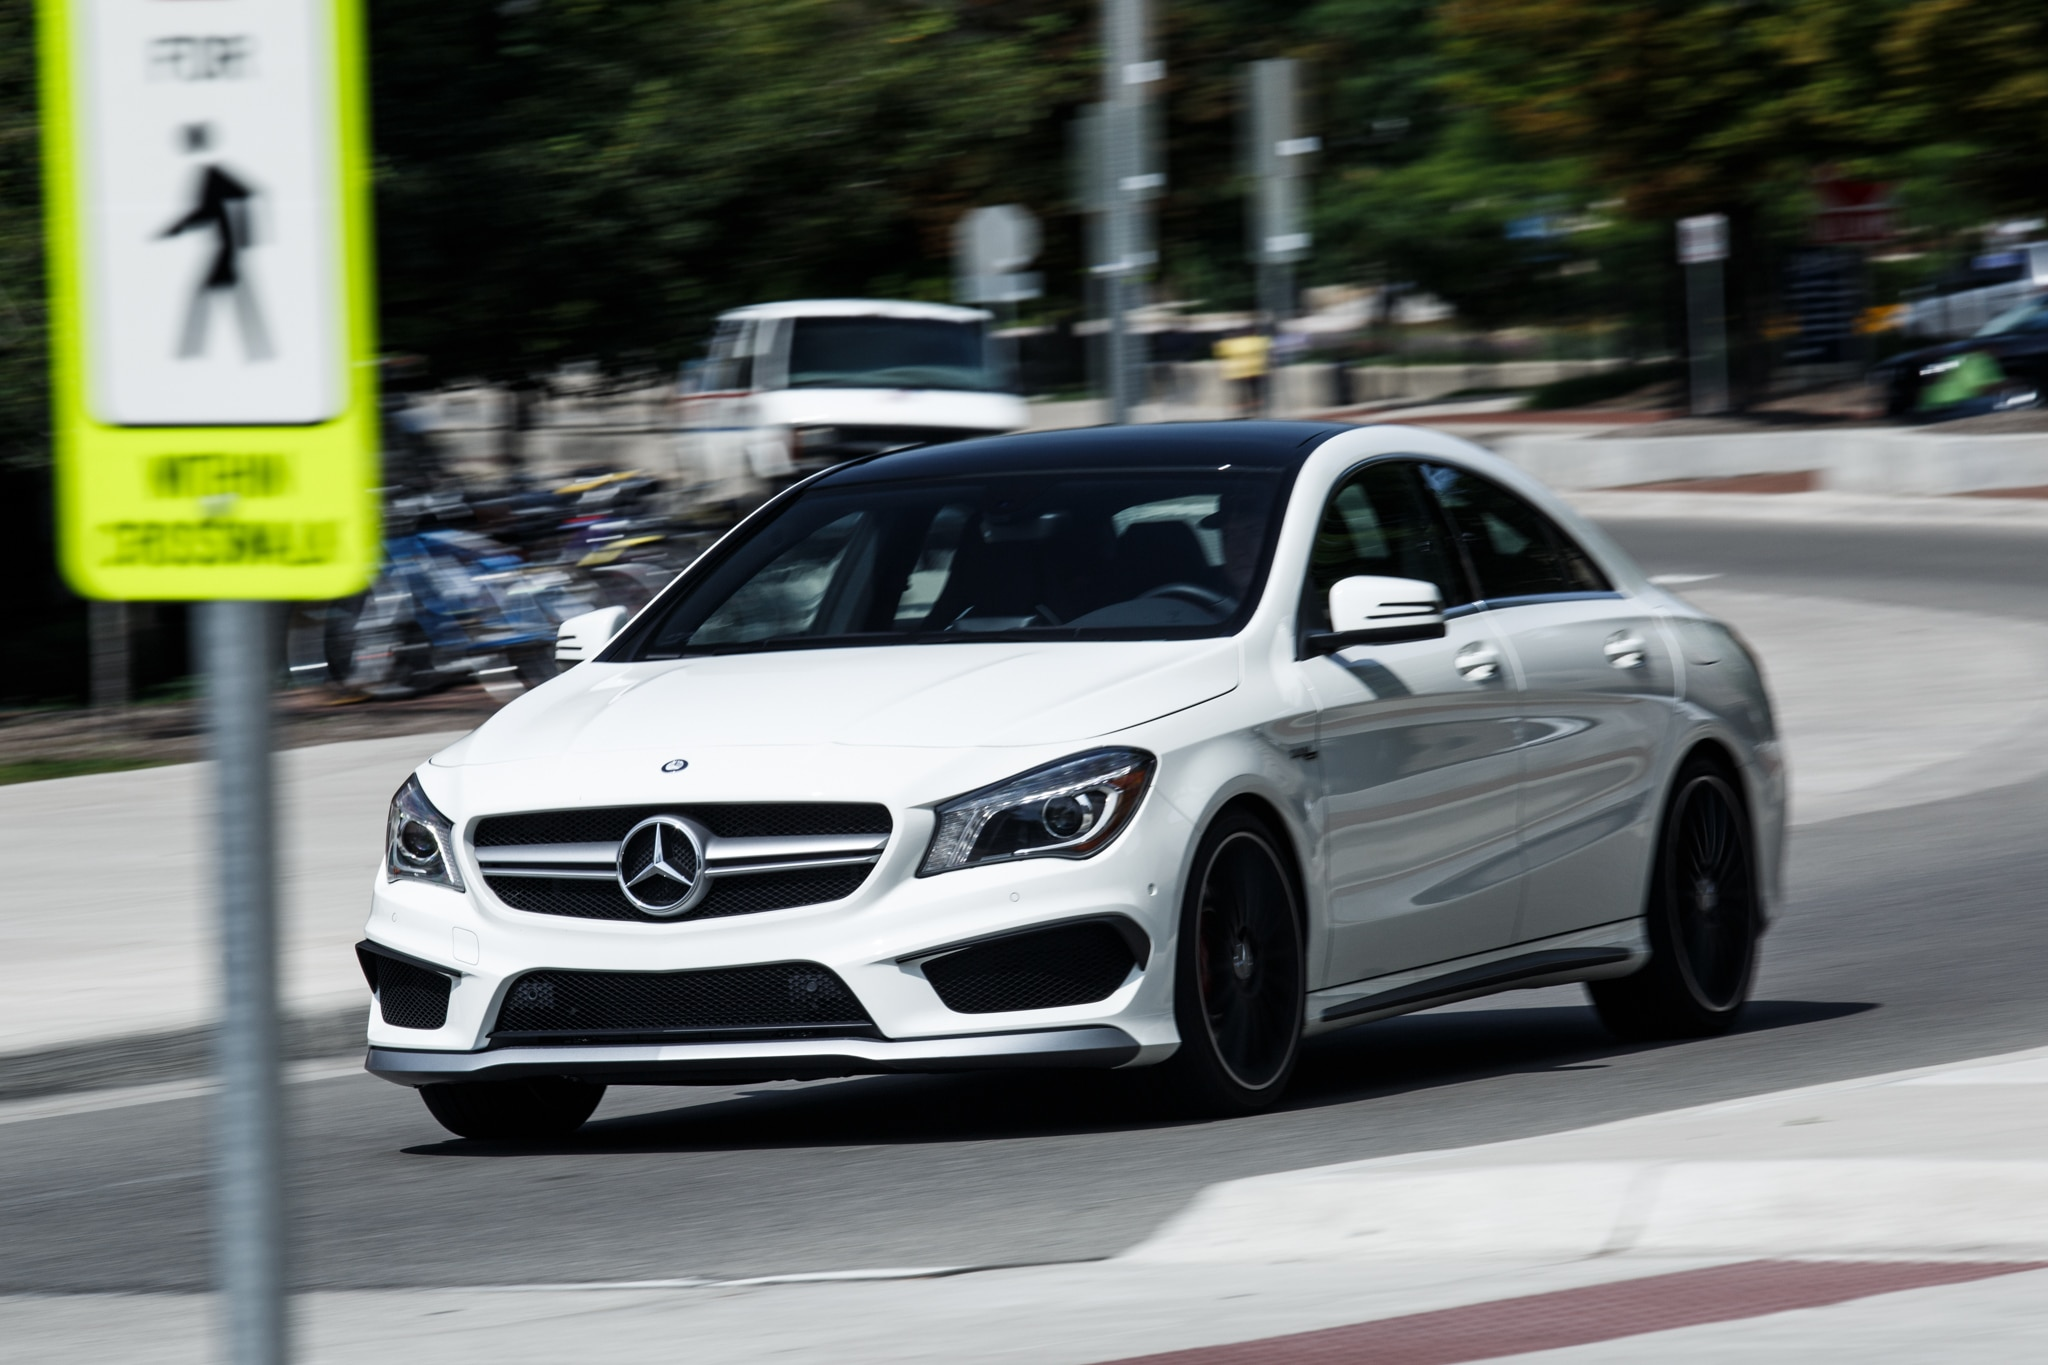 College Cars 15 2014 Mercedes Benz Cla45 Amg Front Three Quarter In Motion